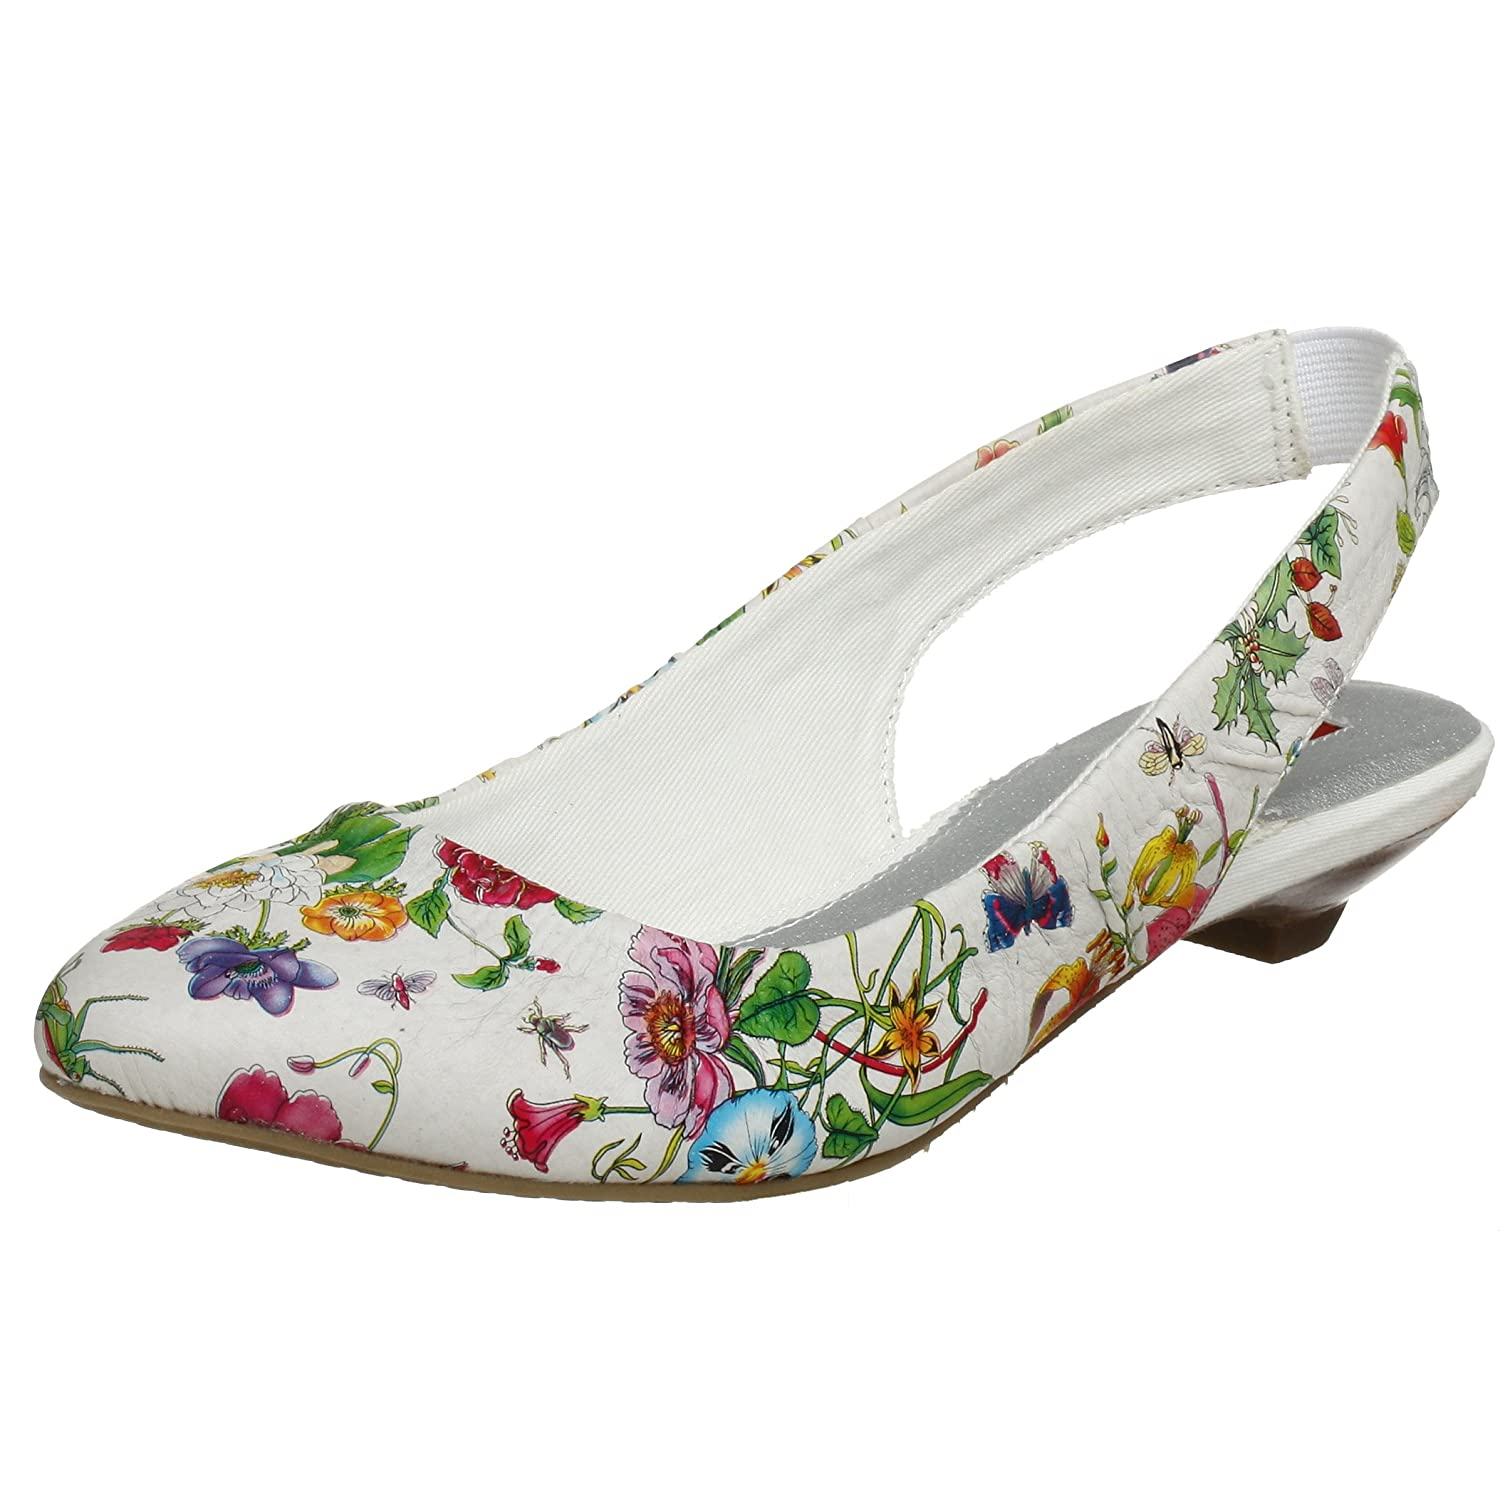 BC Footwear Women's Bowl Cut Flat - Free Overnight Shipping & Return Shipping: Endless.com